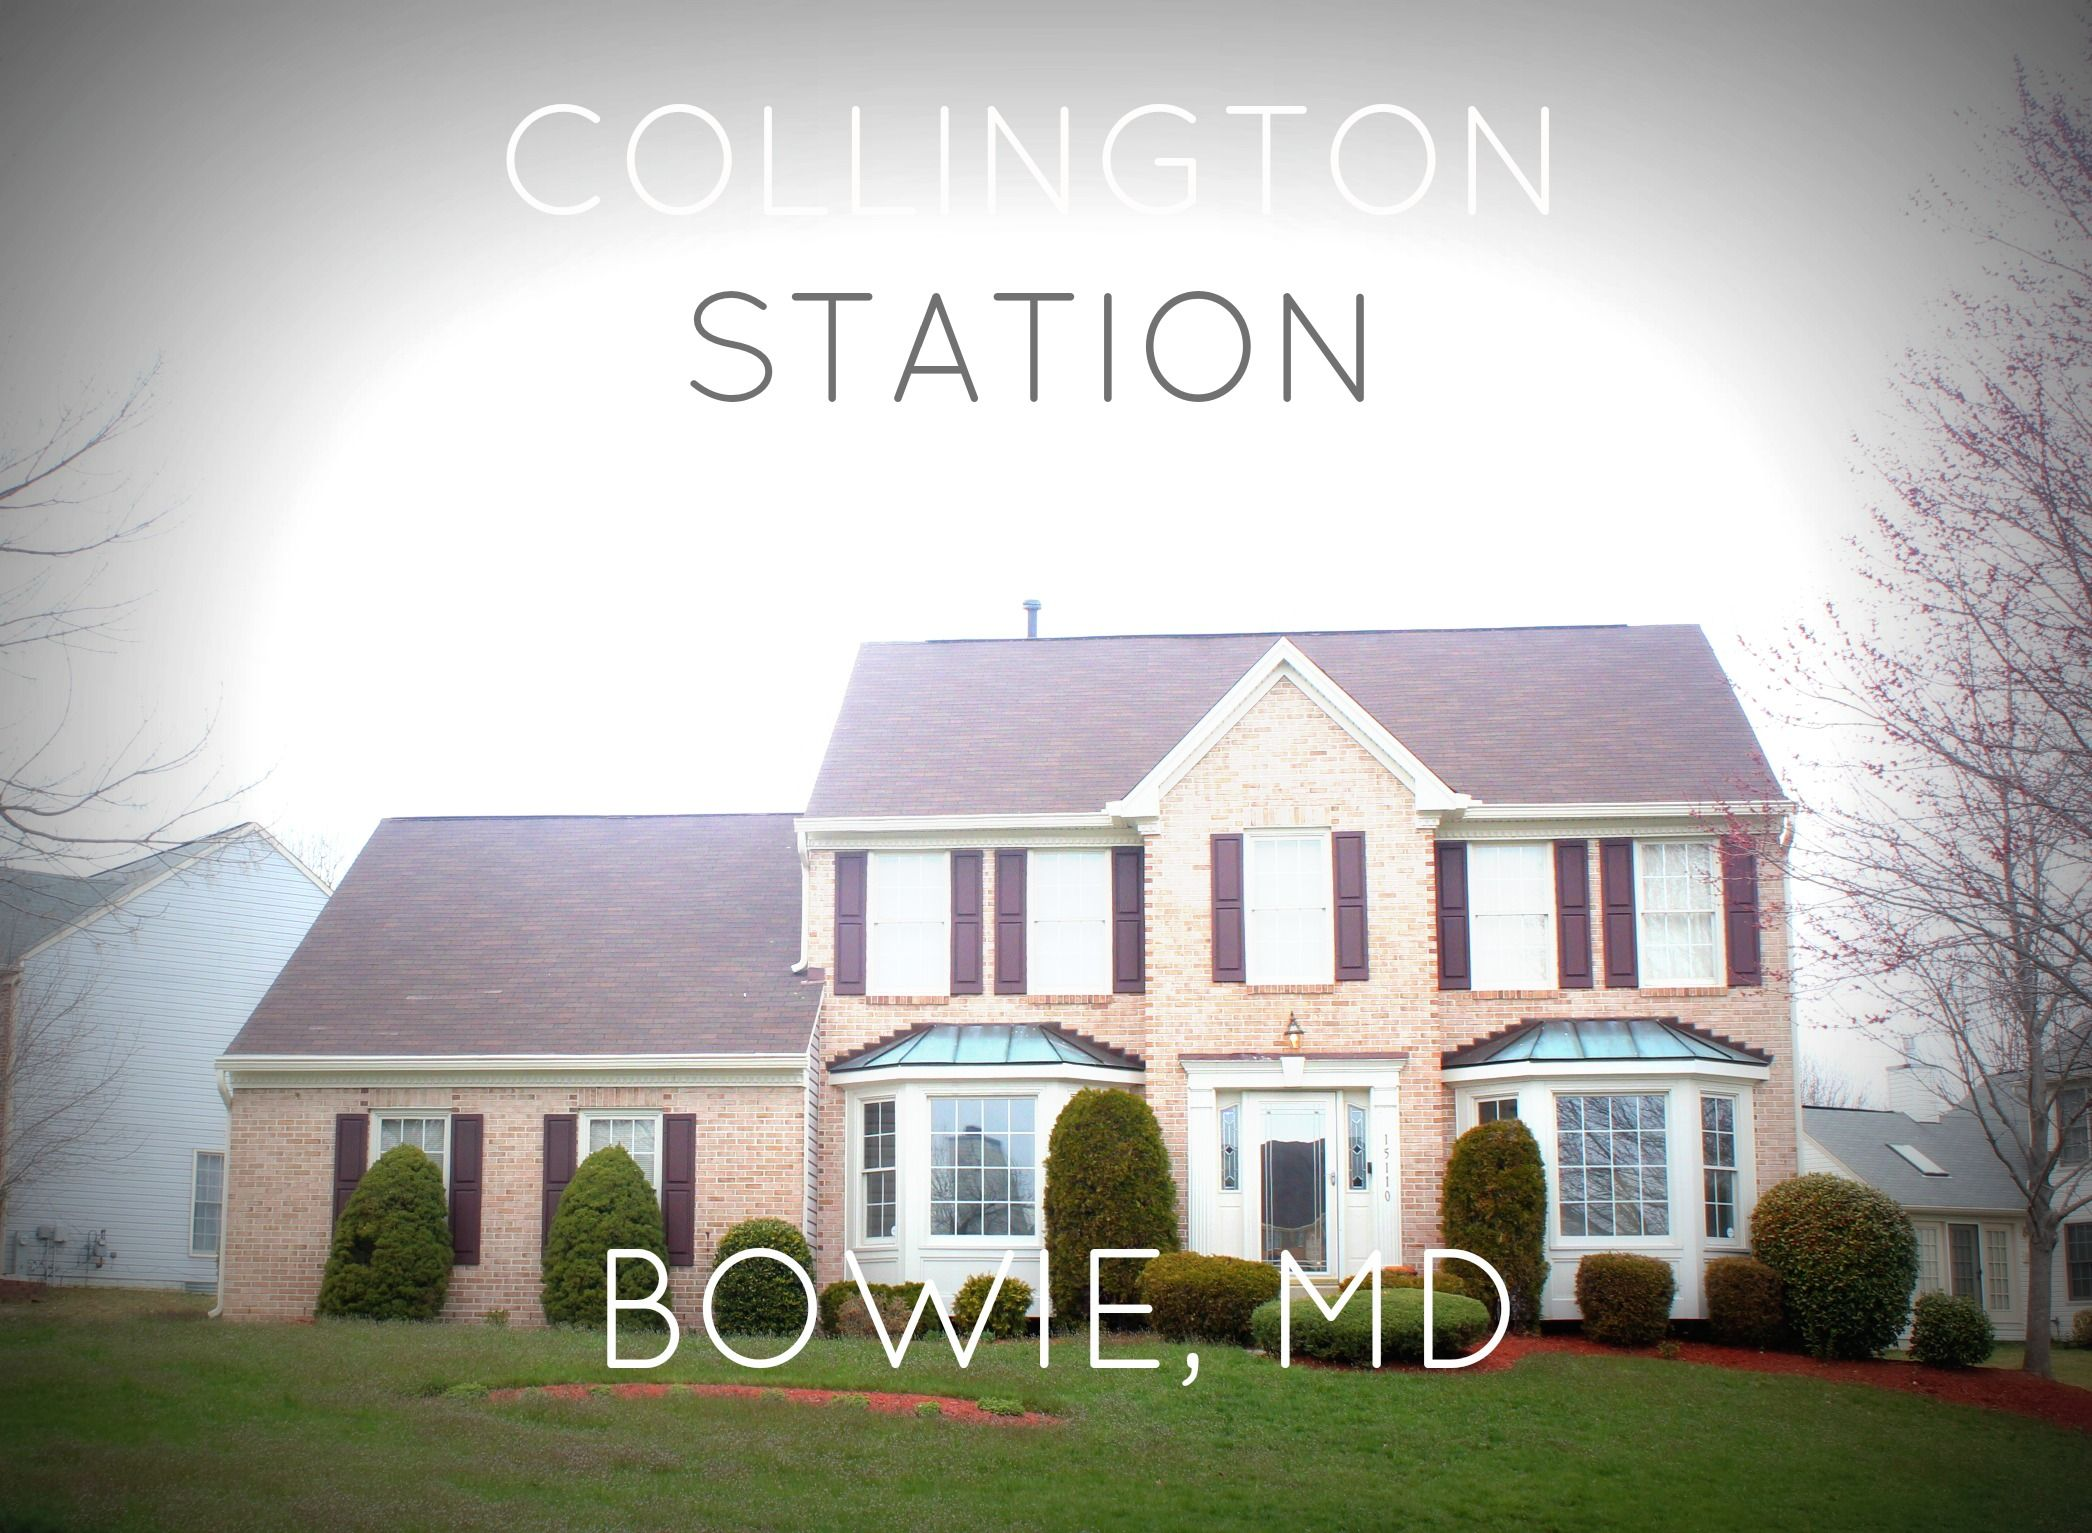 Collington Station Subdivision in Bowie, MD